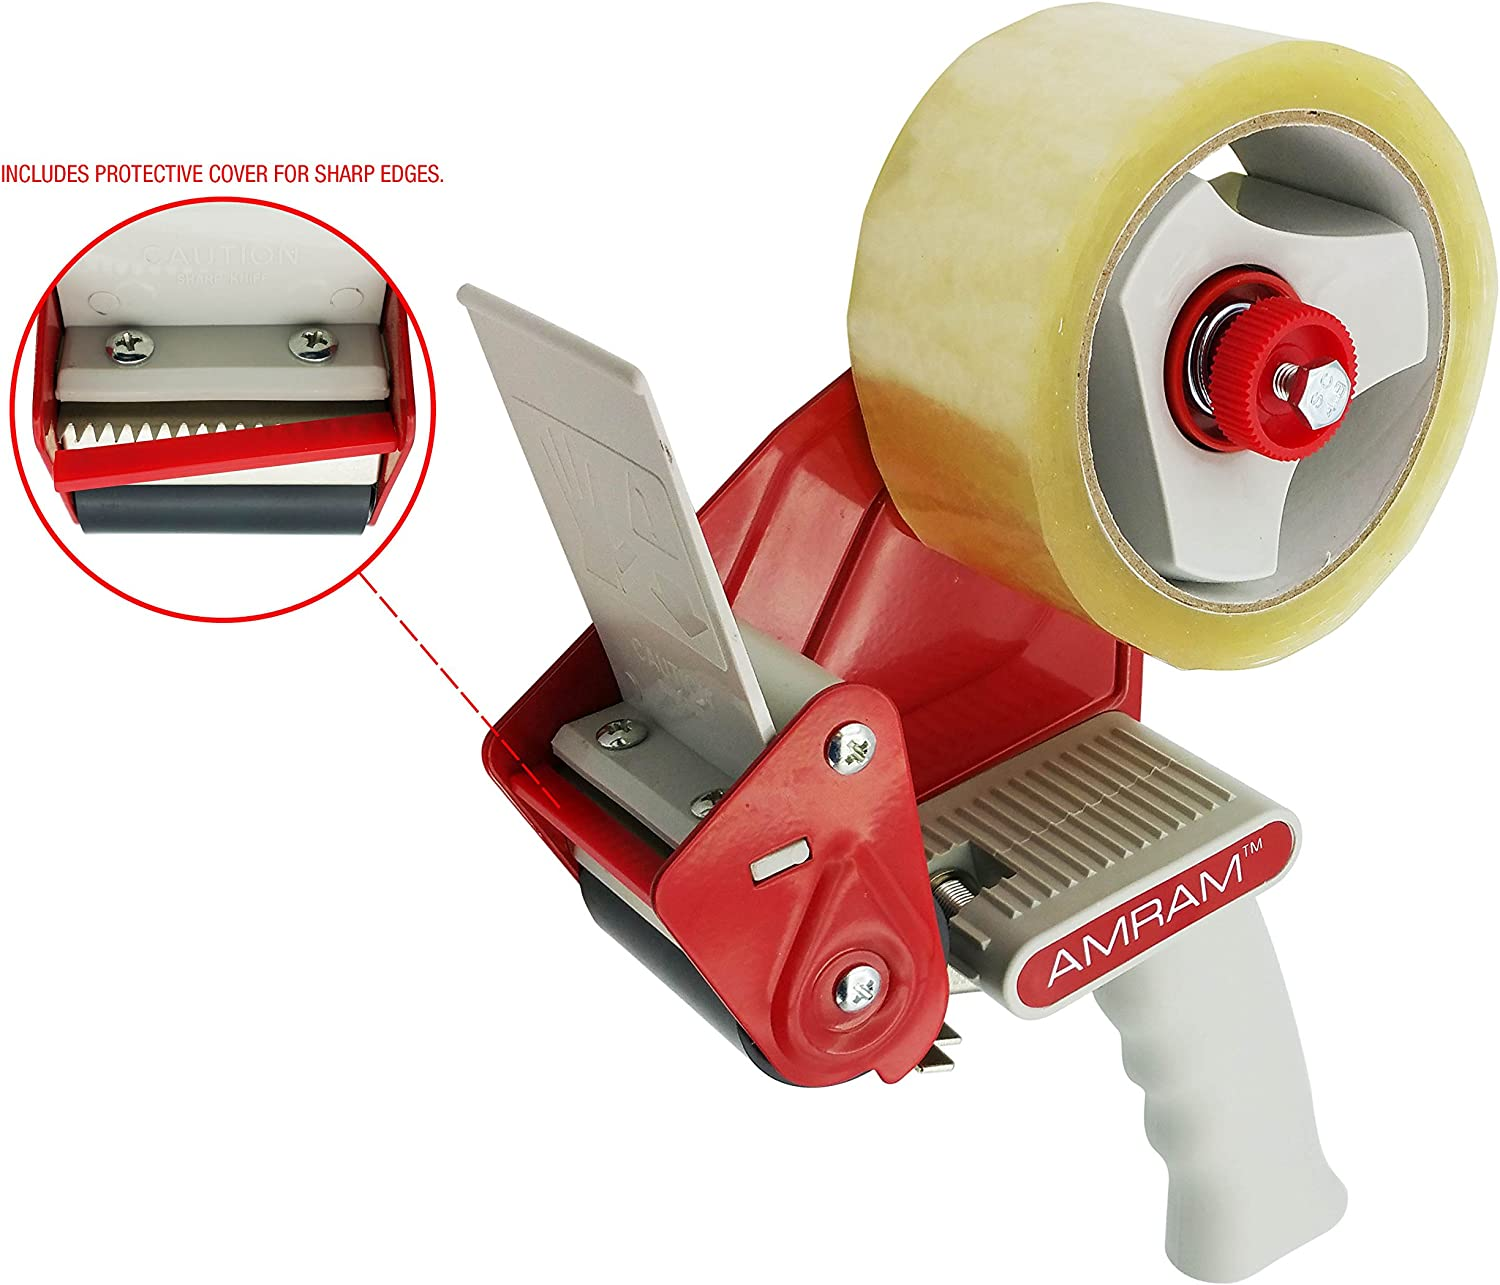 Premium Quality//Industrial Strength 3 Core Amram Packing Tape Dispenser Gun 2 Width Includes 1 Roll of Clear Packing Tape 1.88 x 54 yds